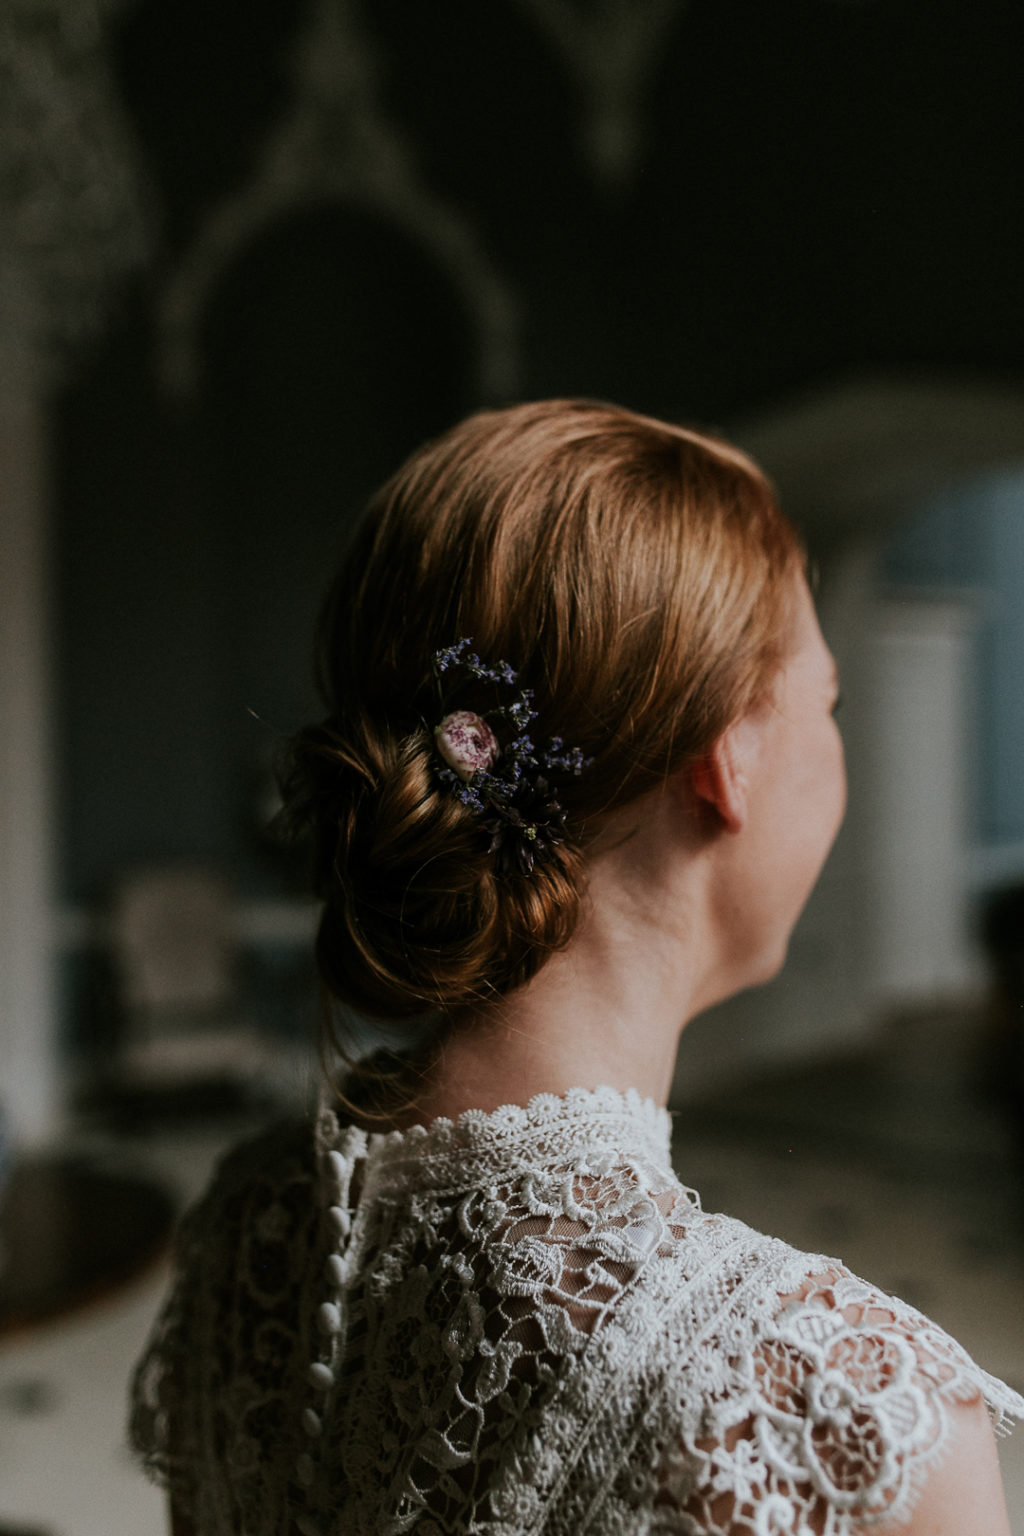 Her red hair was a low updo accented with some dried blooms